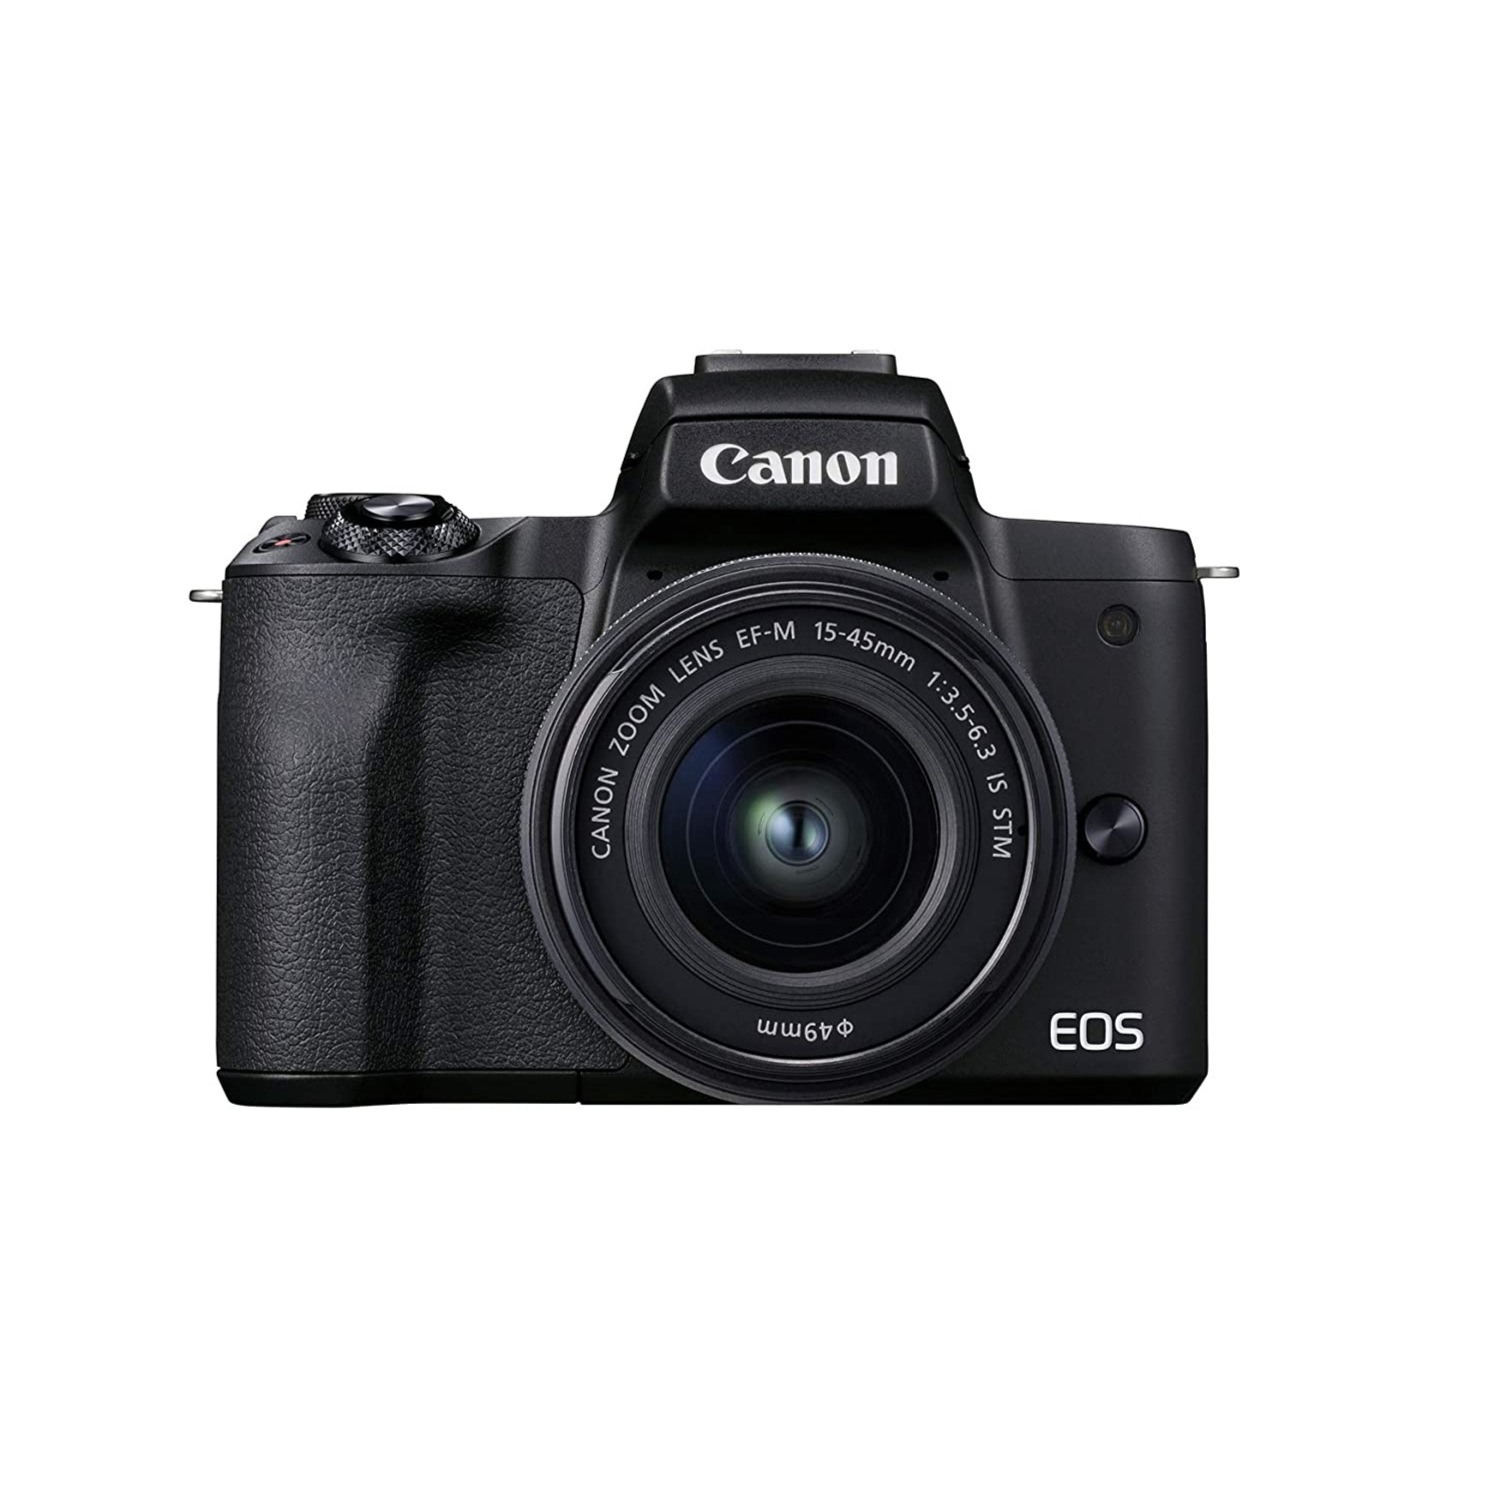 Buy Canon EOS M50 Mark II (Black) + EF-M 15-45mm & EF-M 55-200mm is STM Bundle Online at Low Price in India | Canon Camera Reviews & Ratings - Amazon.in